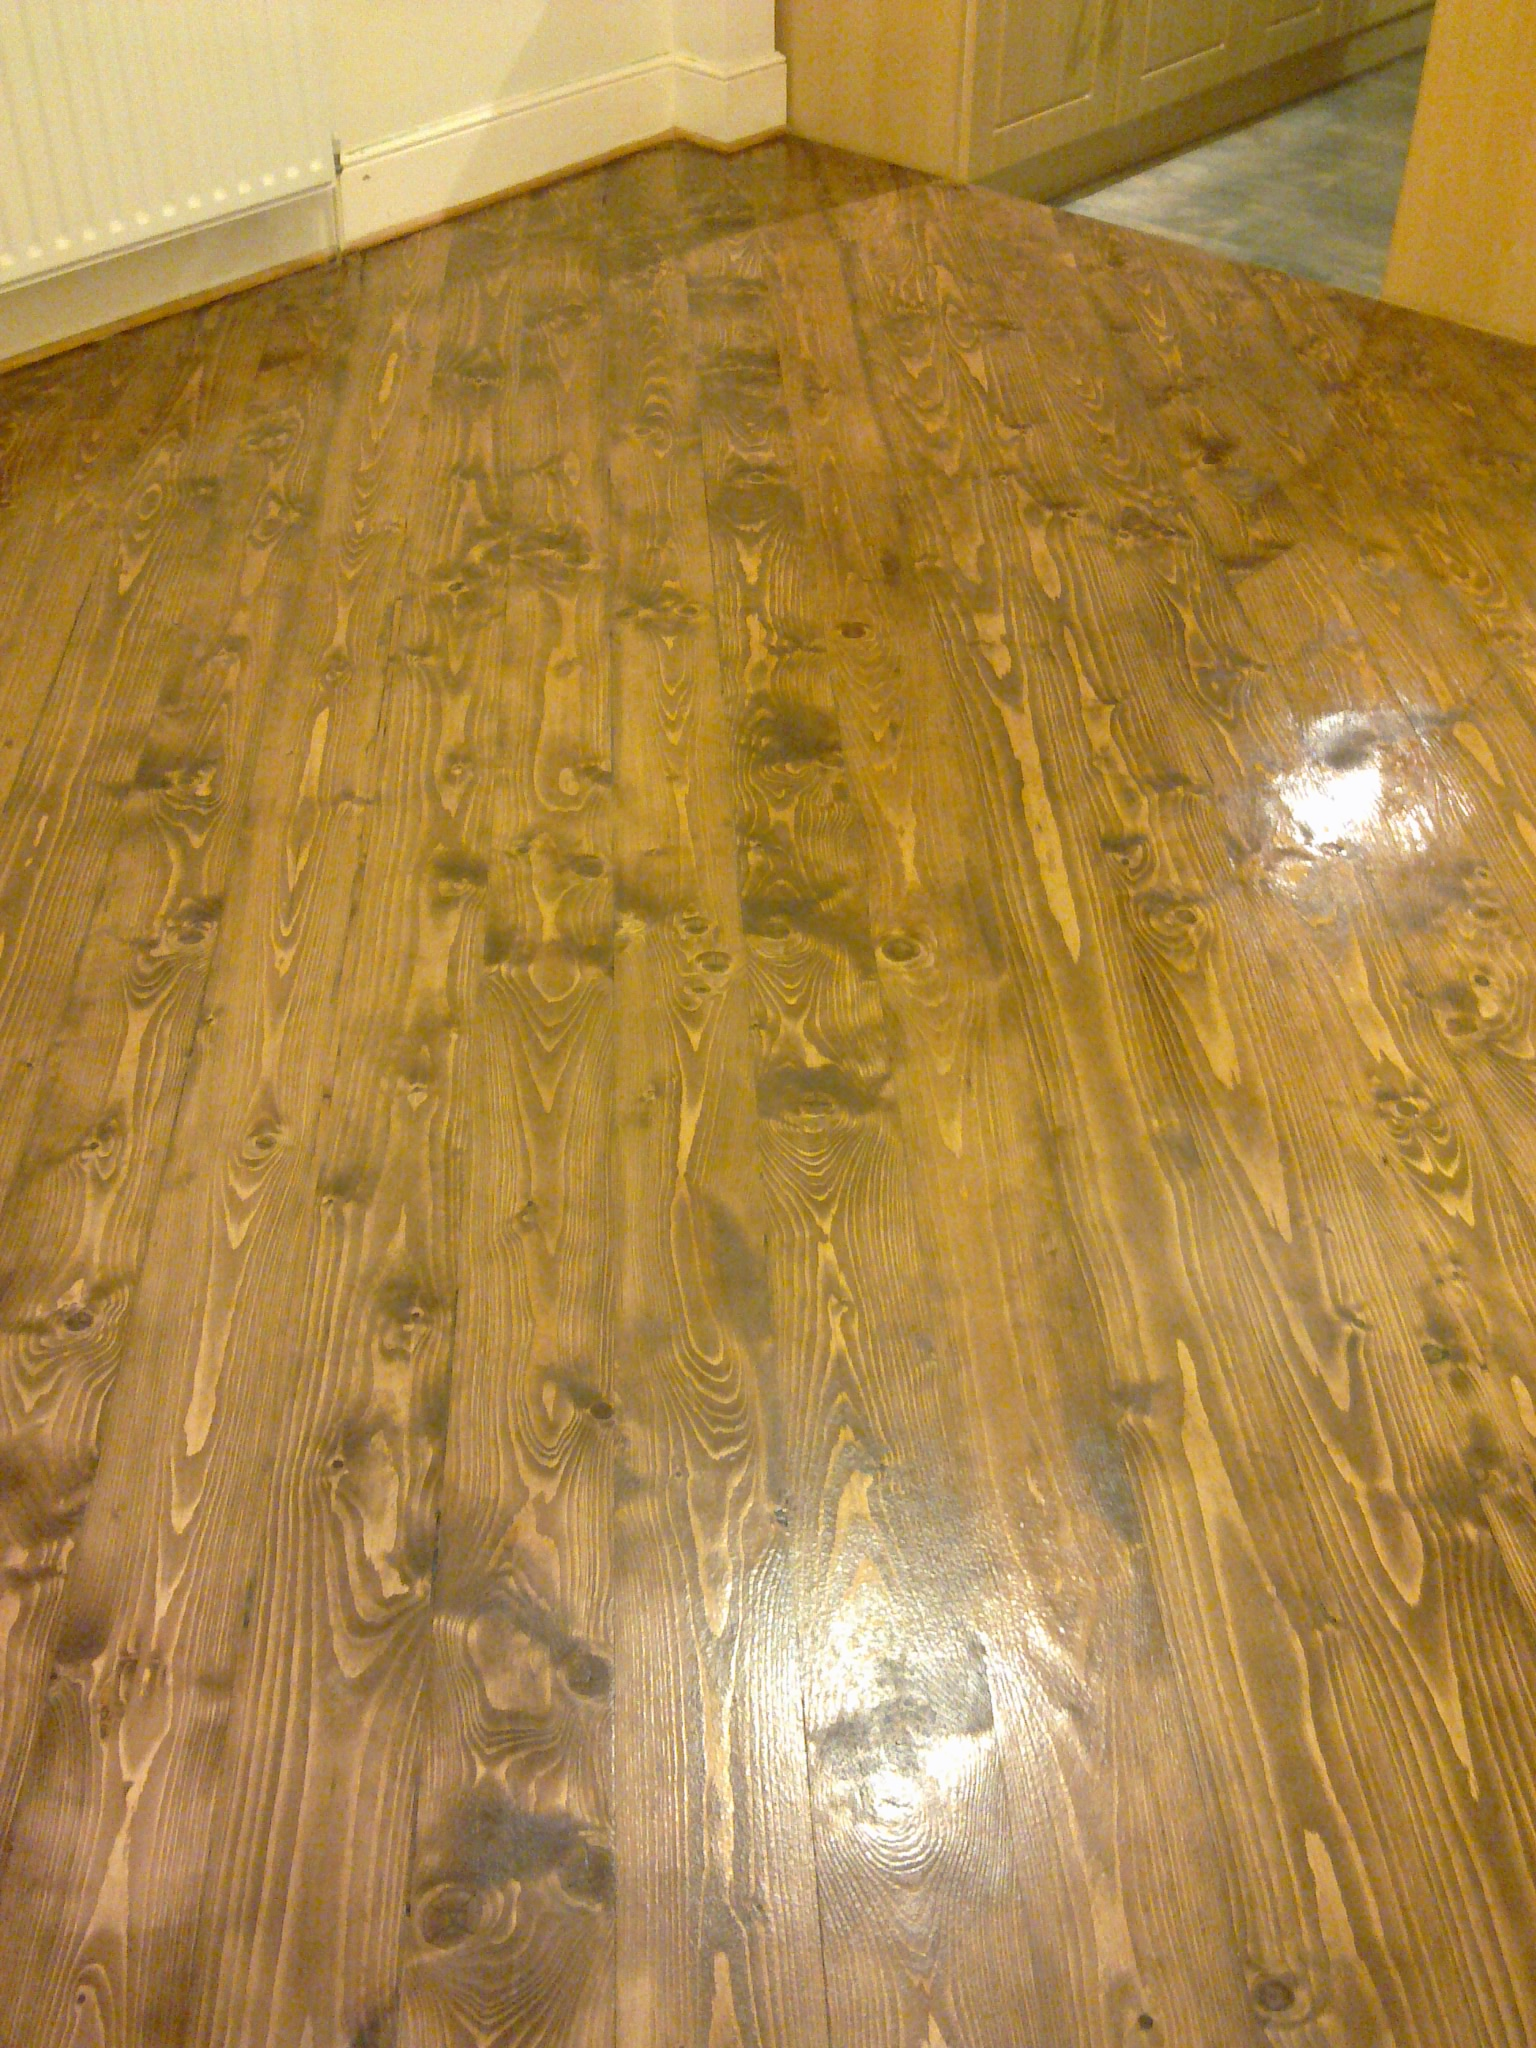 Pine floor with wood dye applied